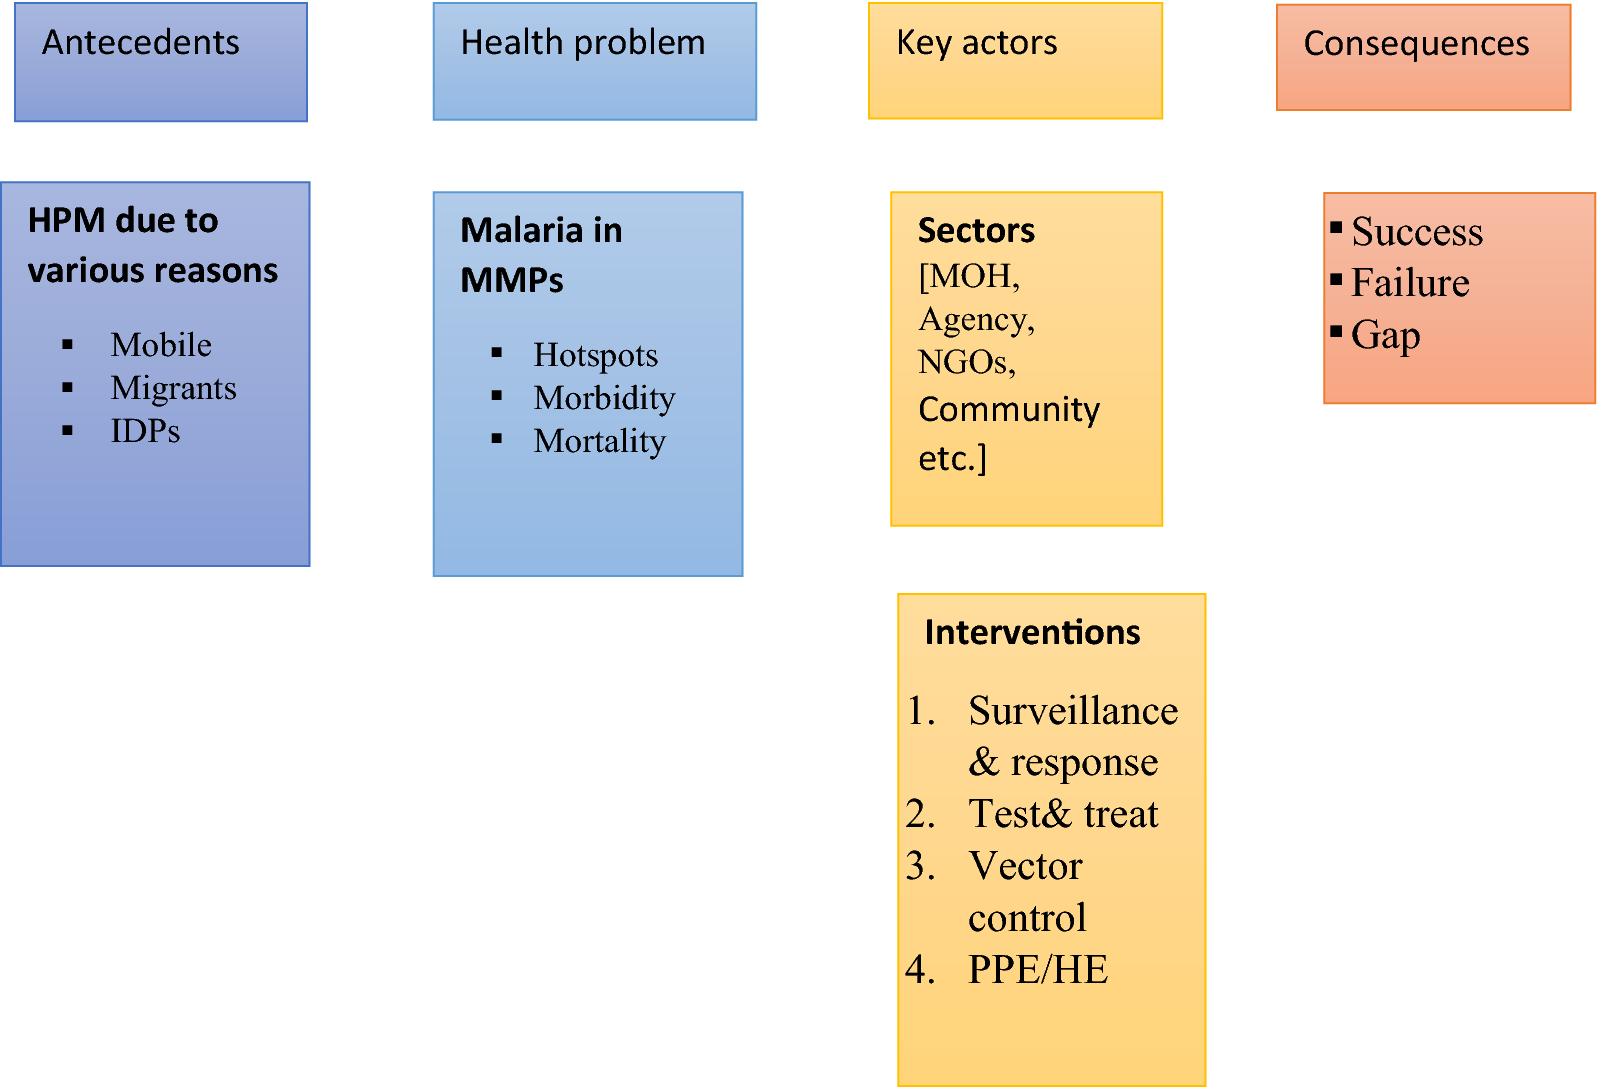 Inter-sectoral approaches for the prevention and control of malaria